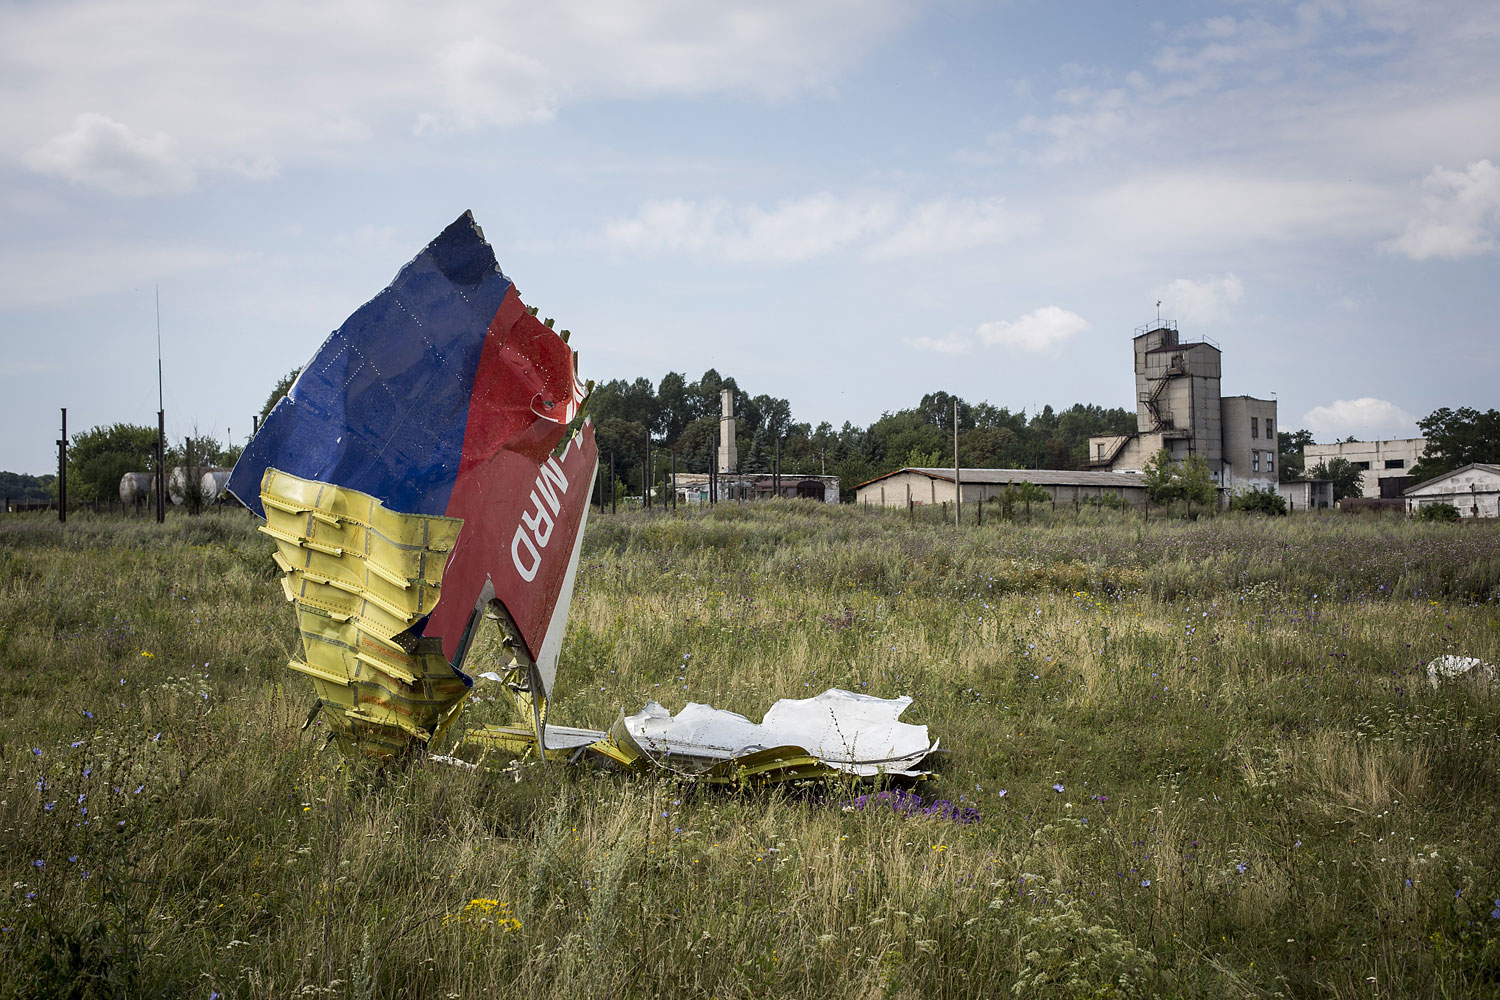 Wreckage from Malaysia Airlines Flight MH17 lies in a field in Grabovo, Ukraine, on July 22, 2014